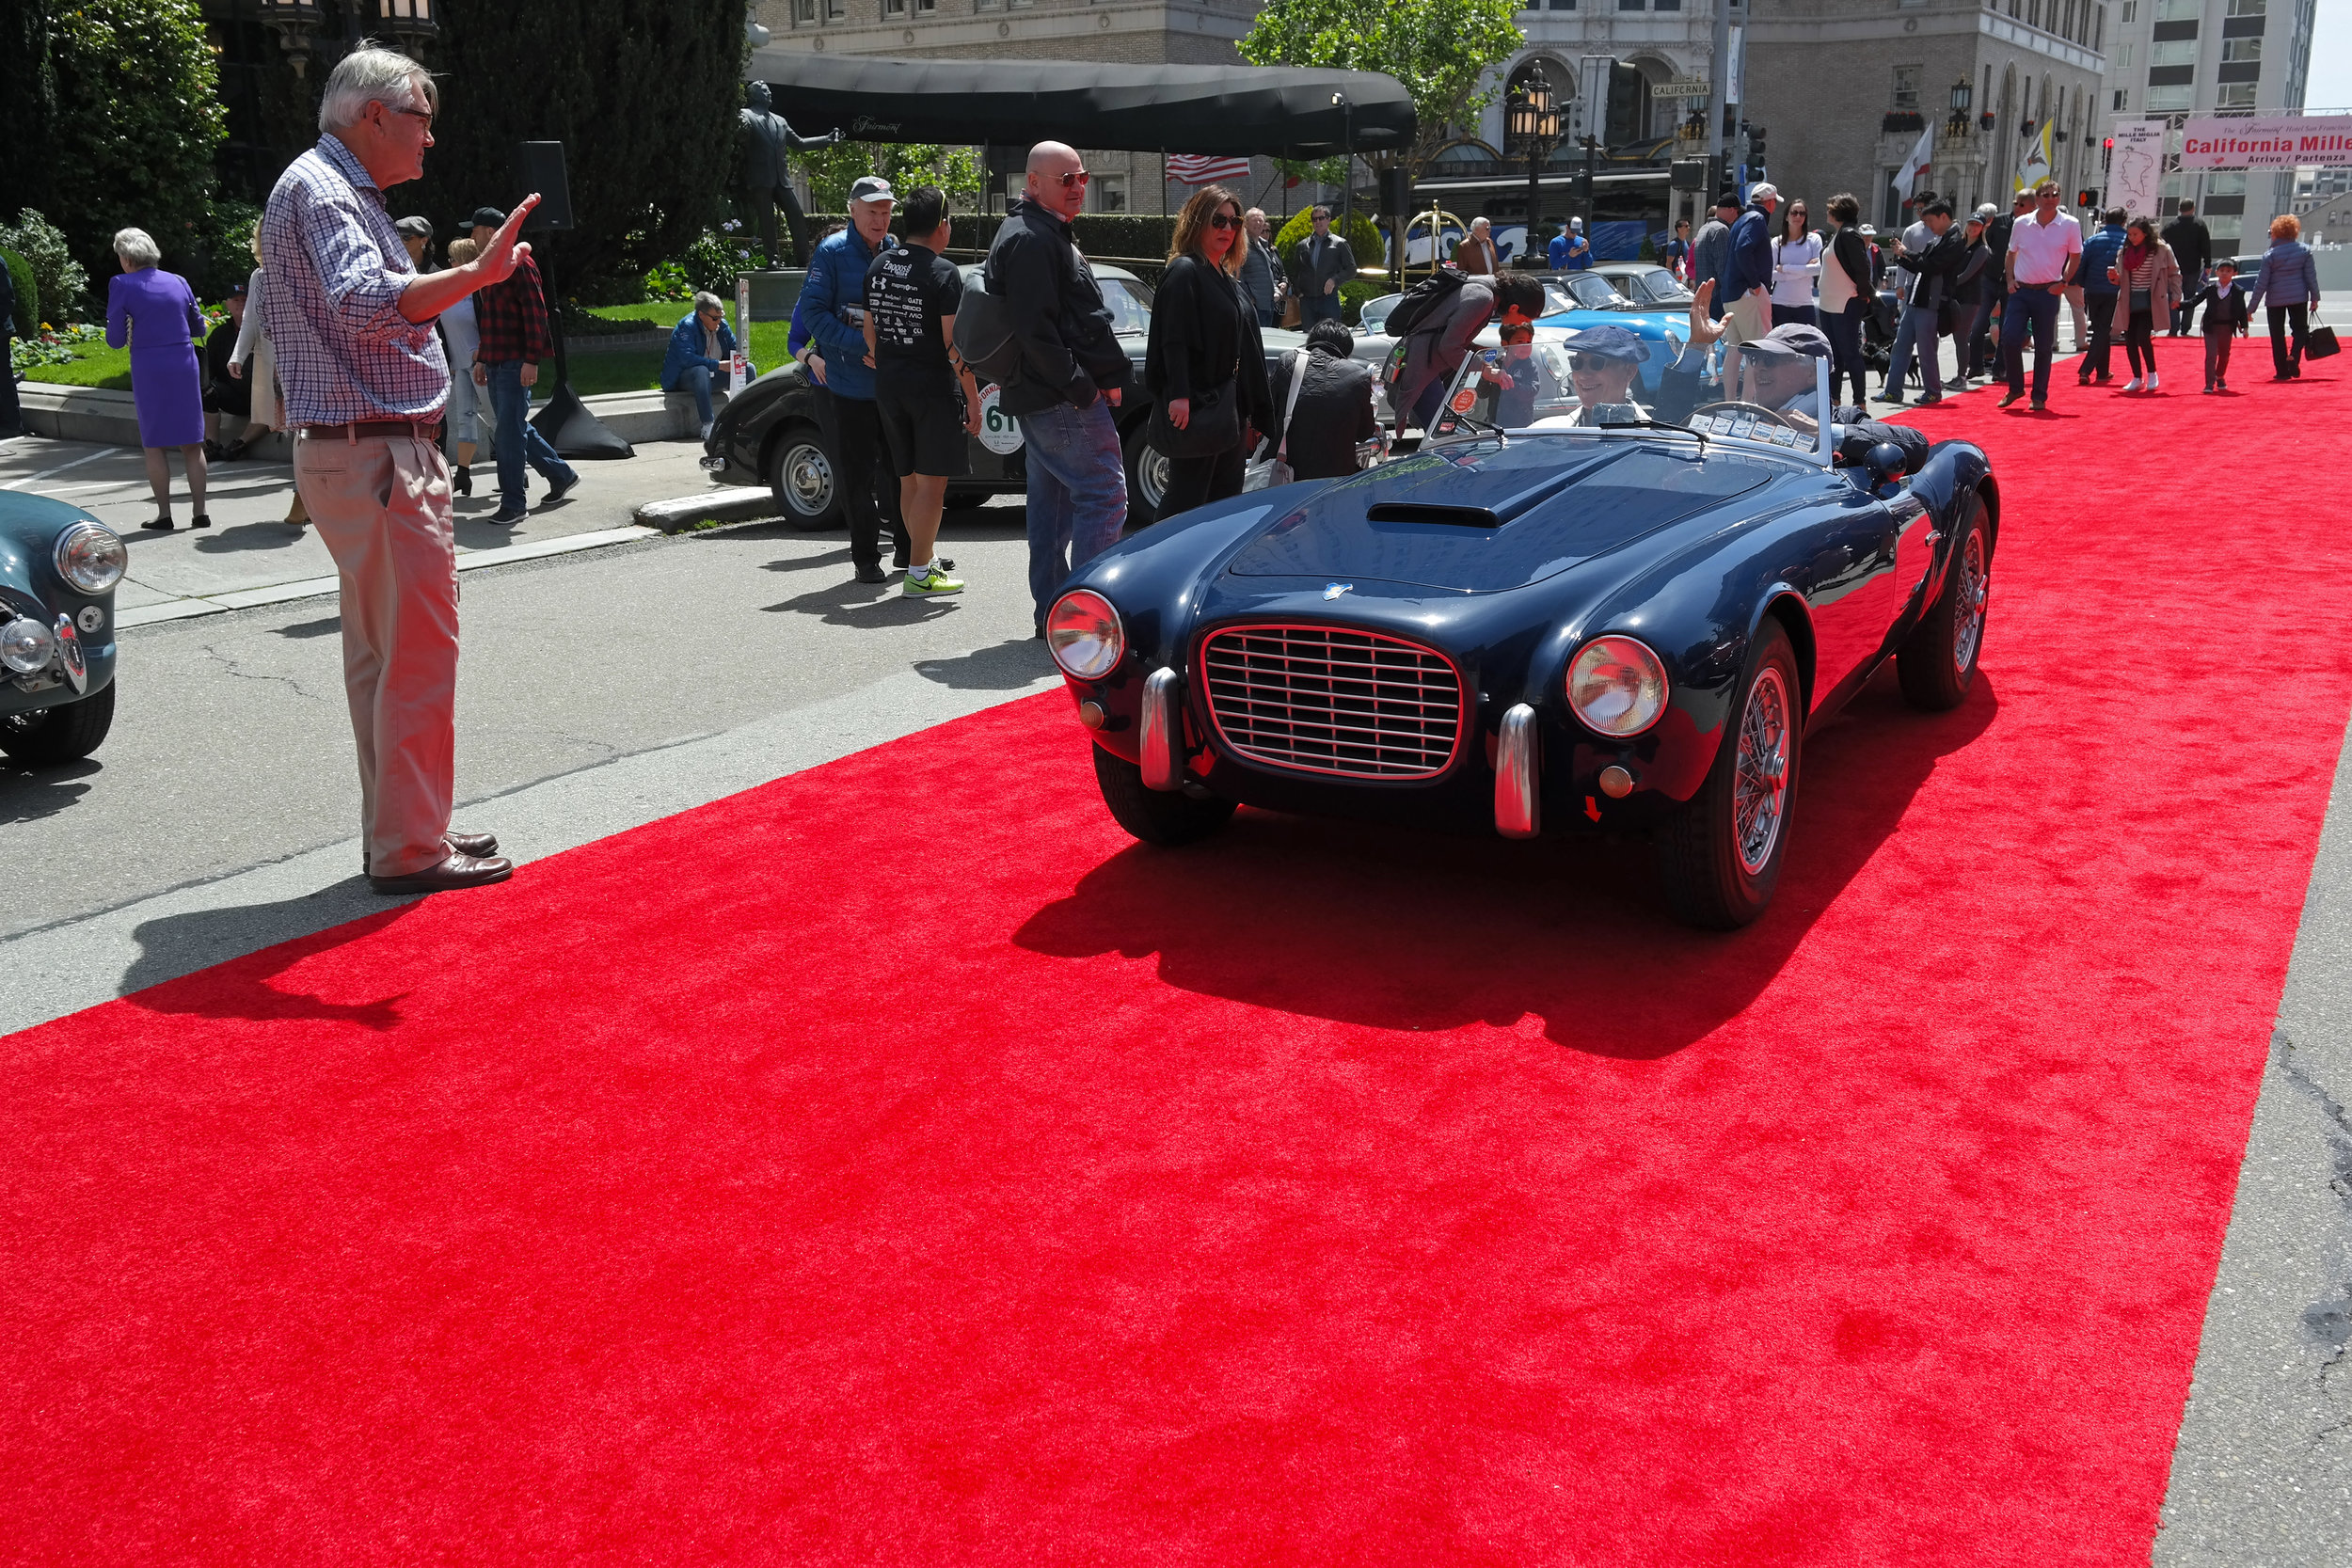 The 1953 Siata 208S  driven by Robert Davis and Jerry Anderson of CA